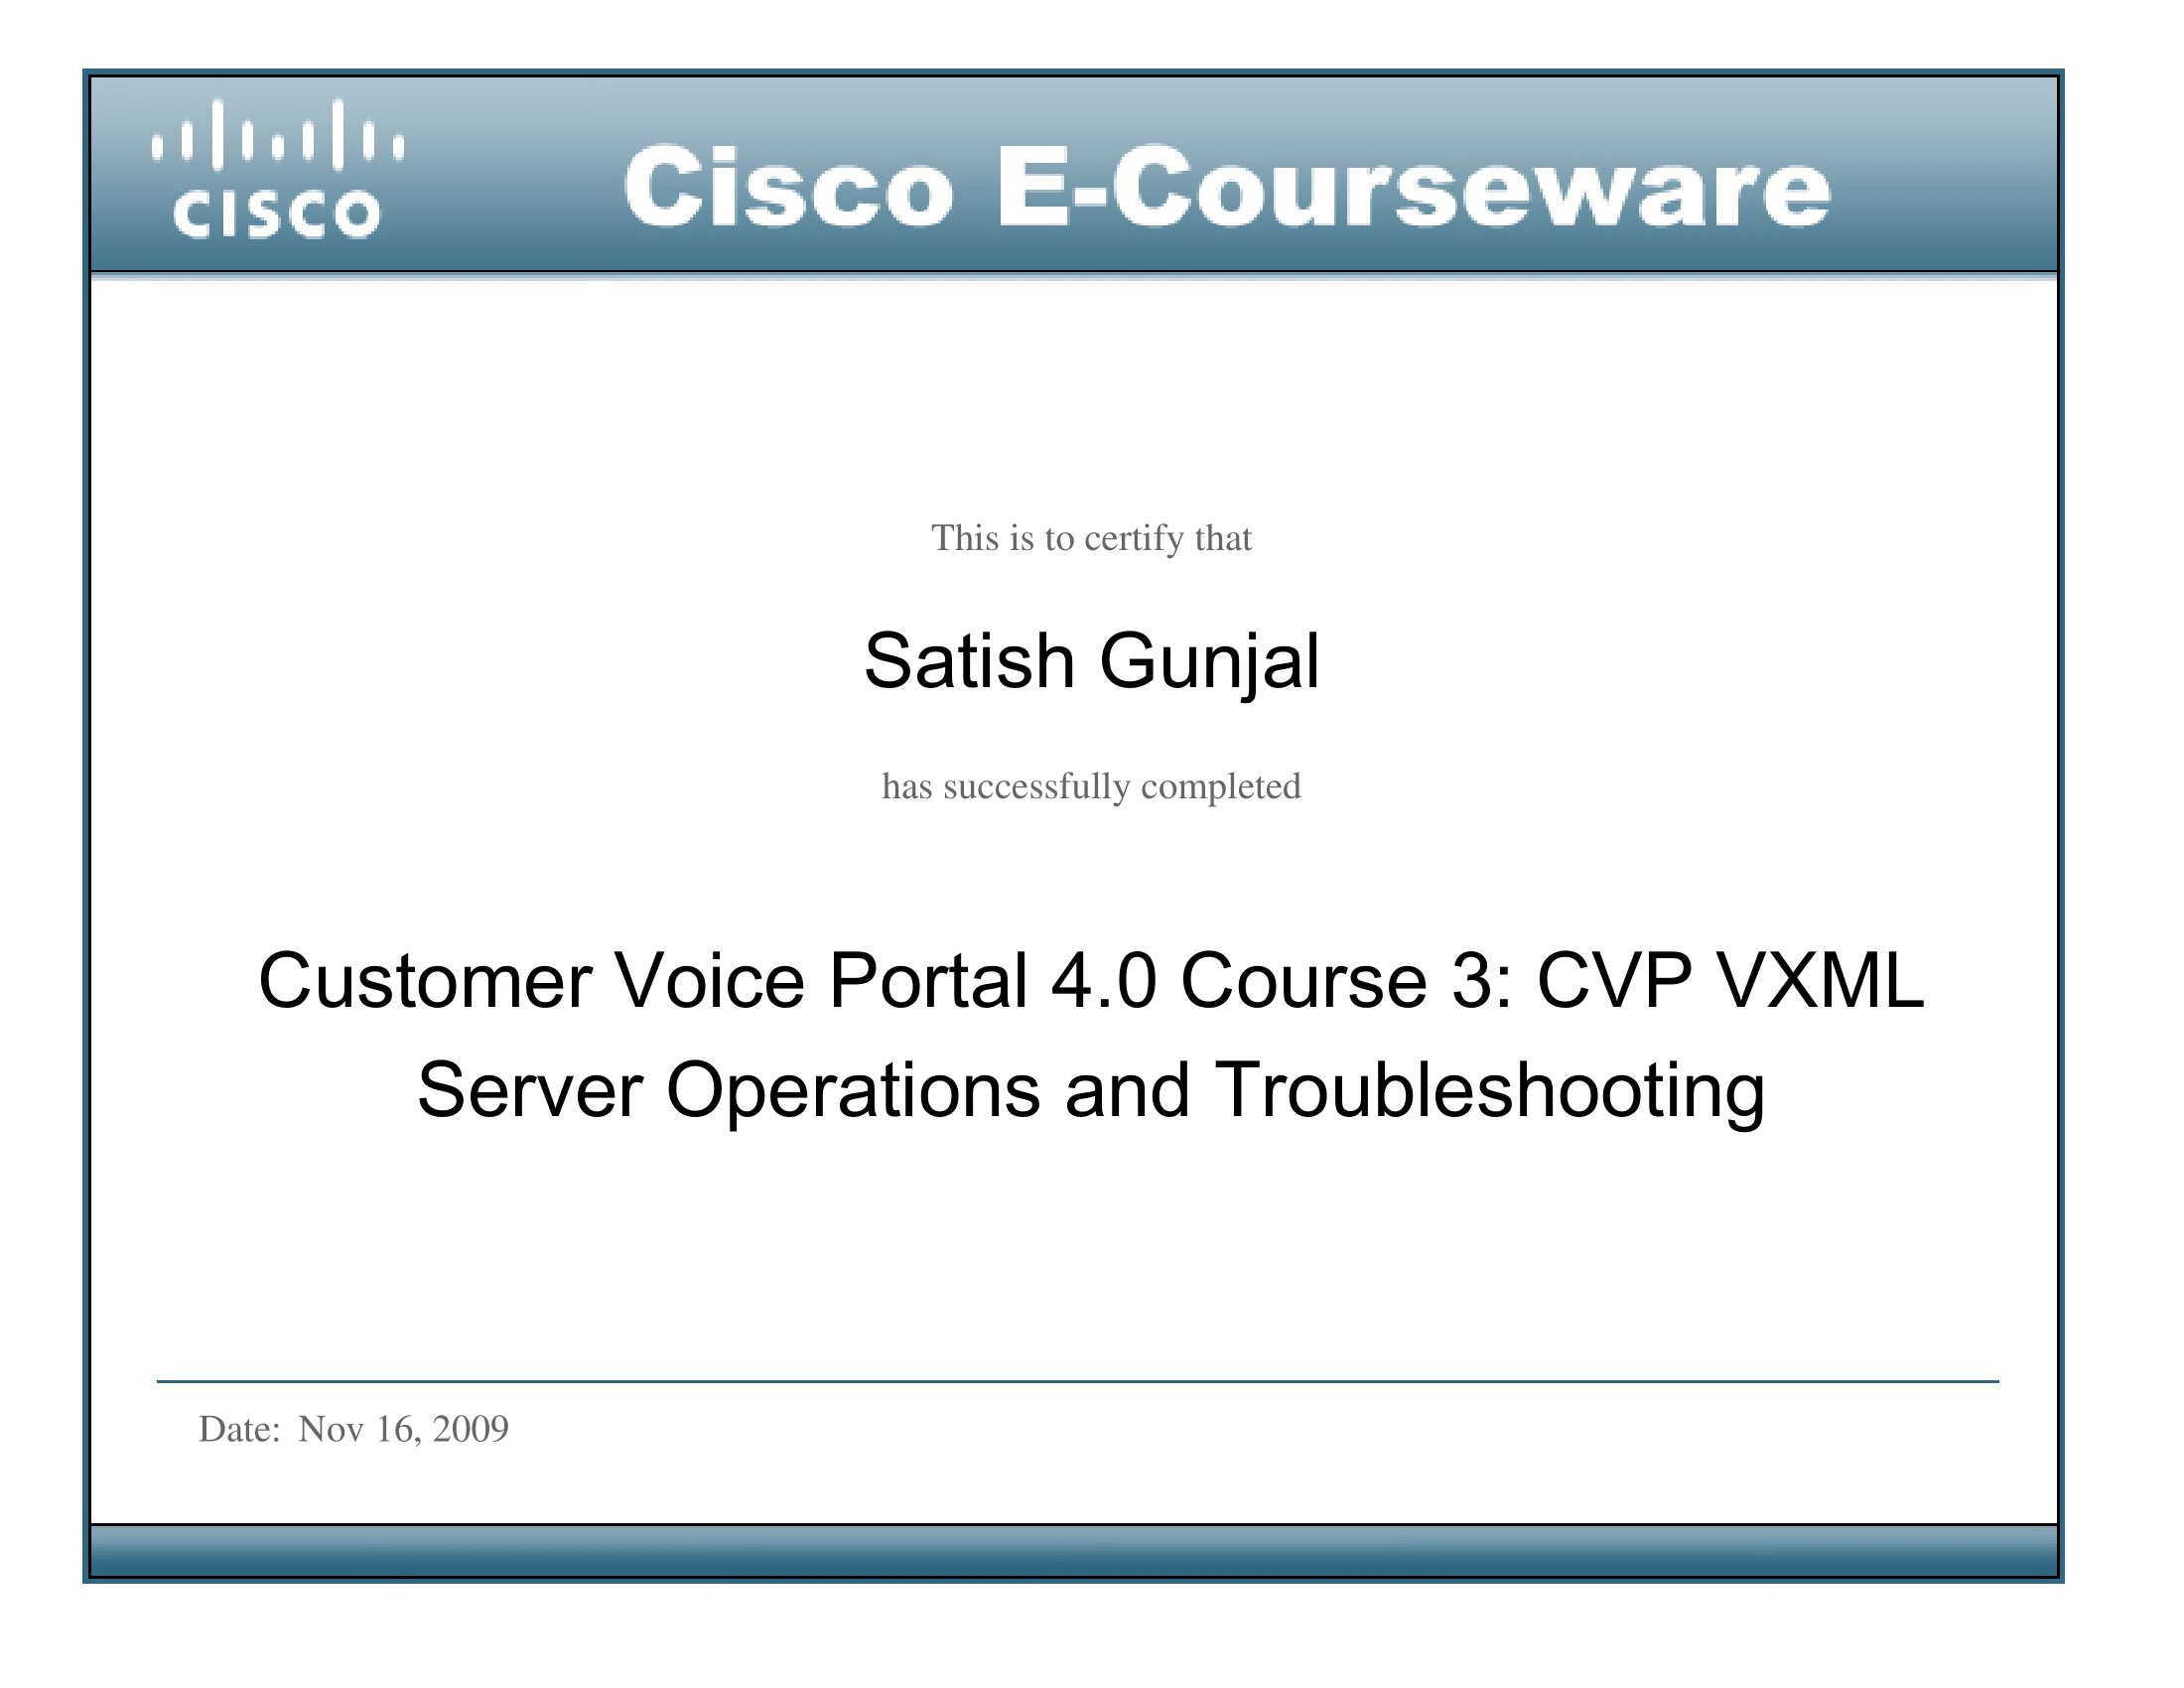 CVP 4.0 Course 3 CVP VXML Server Operations and Troubleshooting